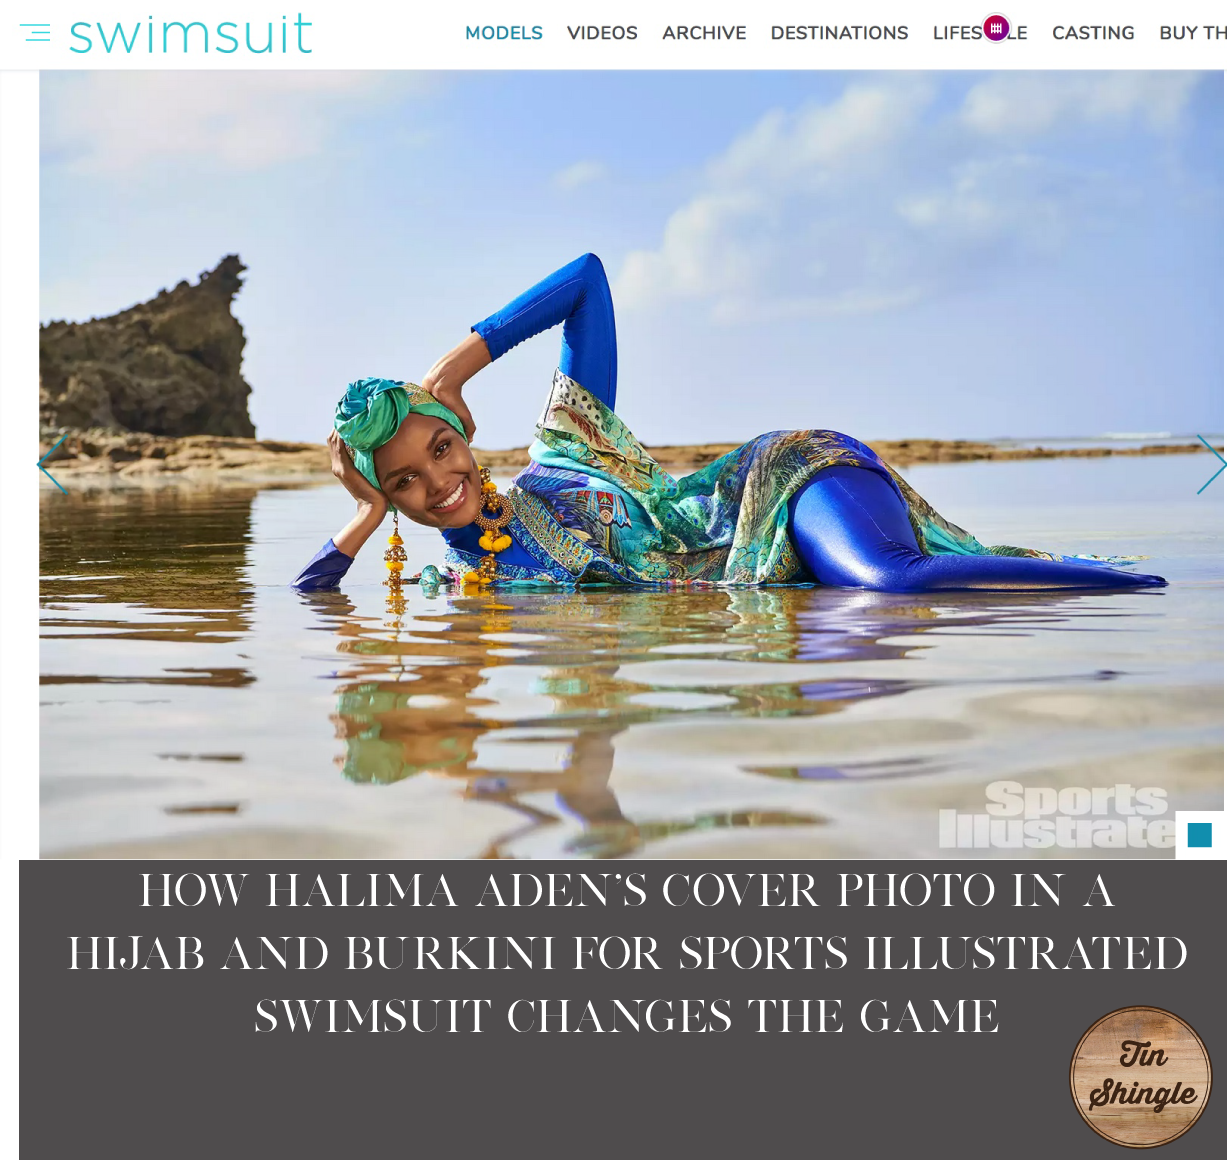 halima-aden-sports-illustrated-hijab-burkini-MAIN.png